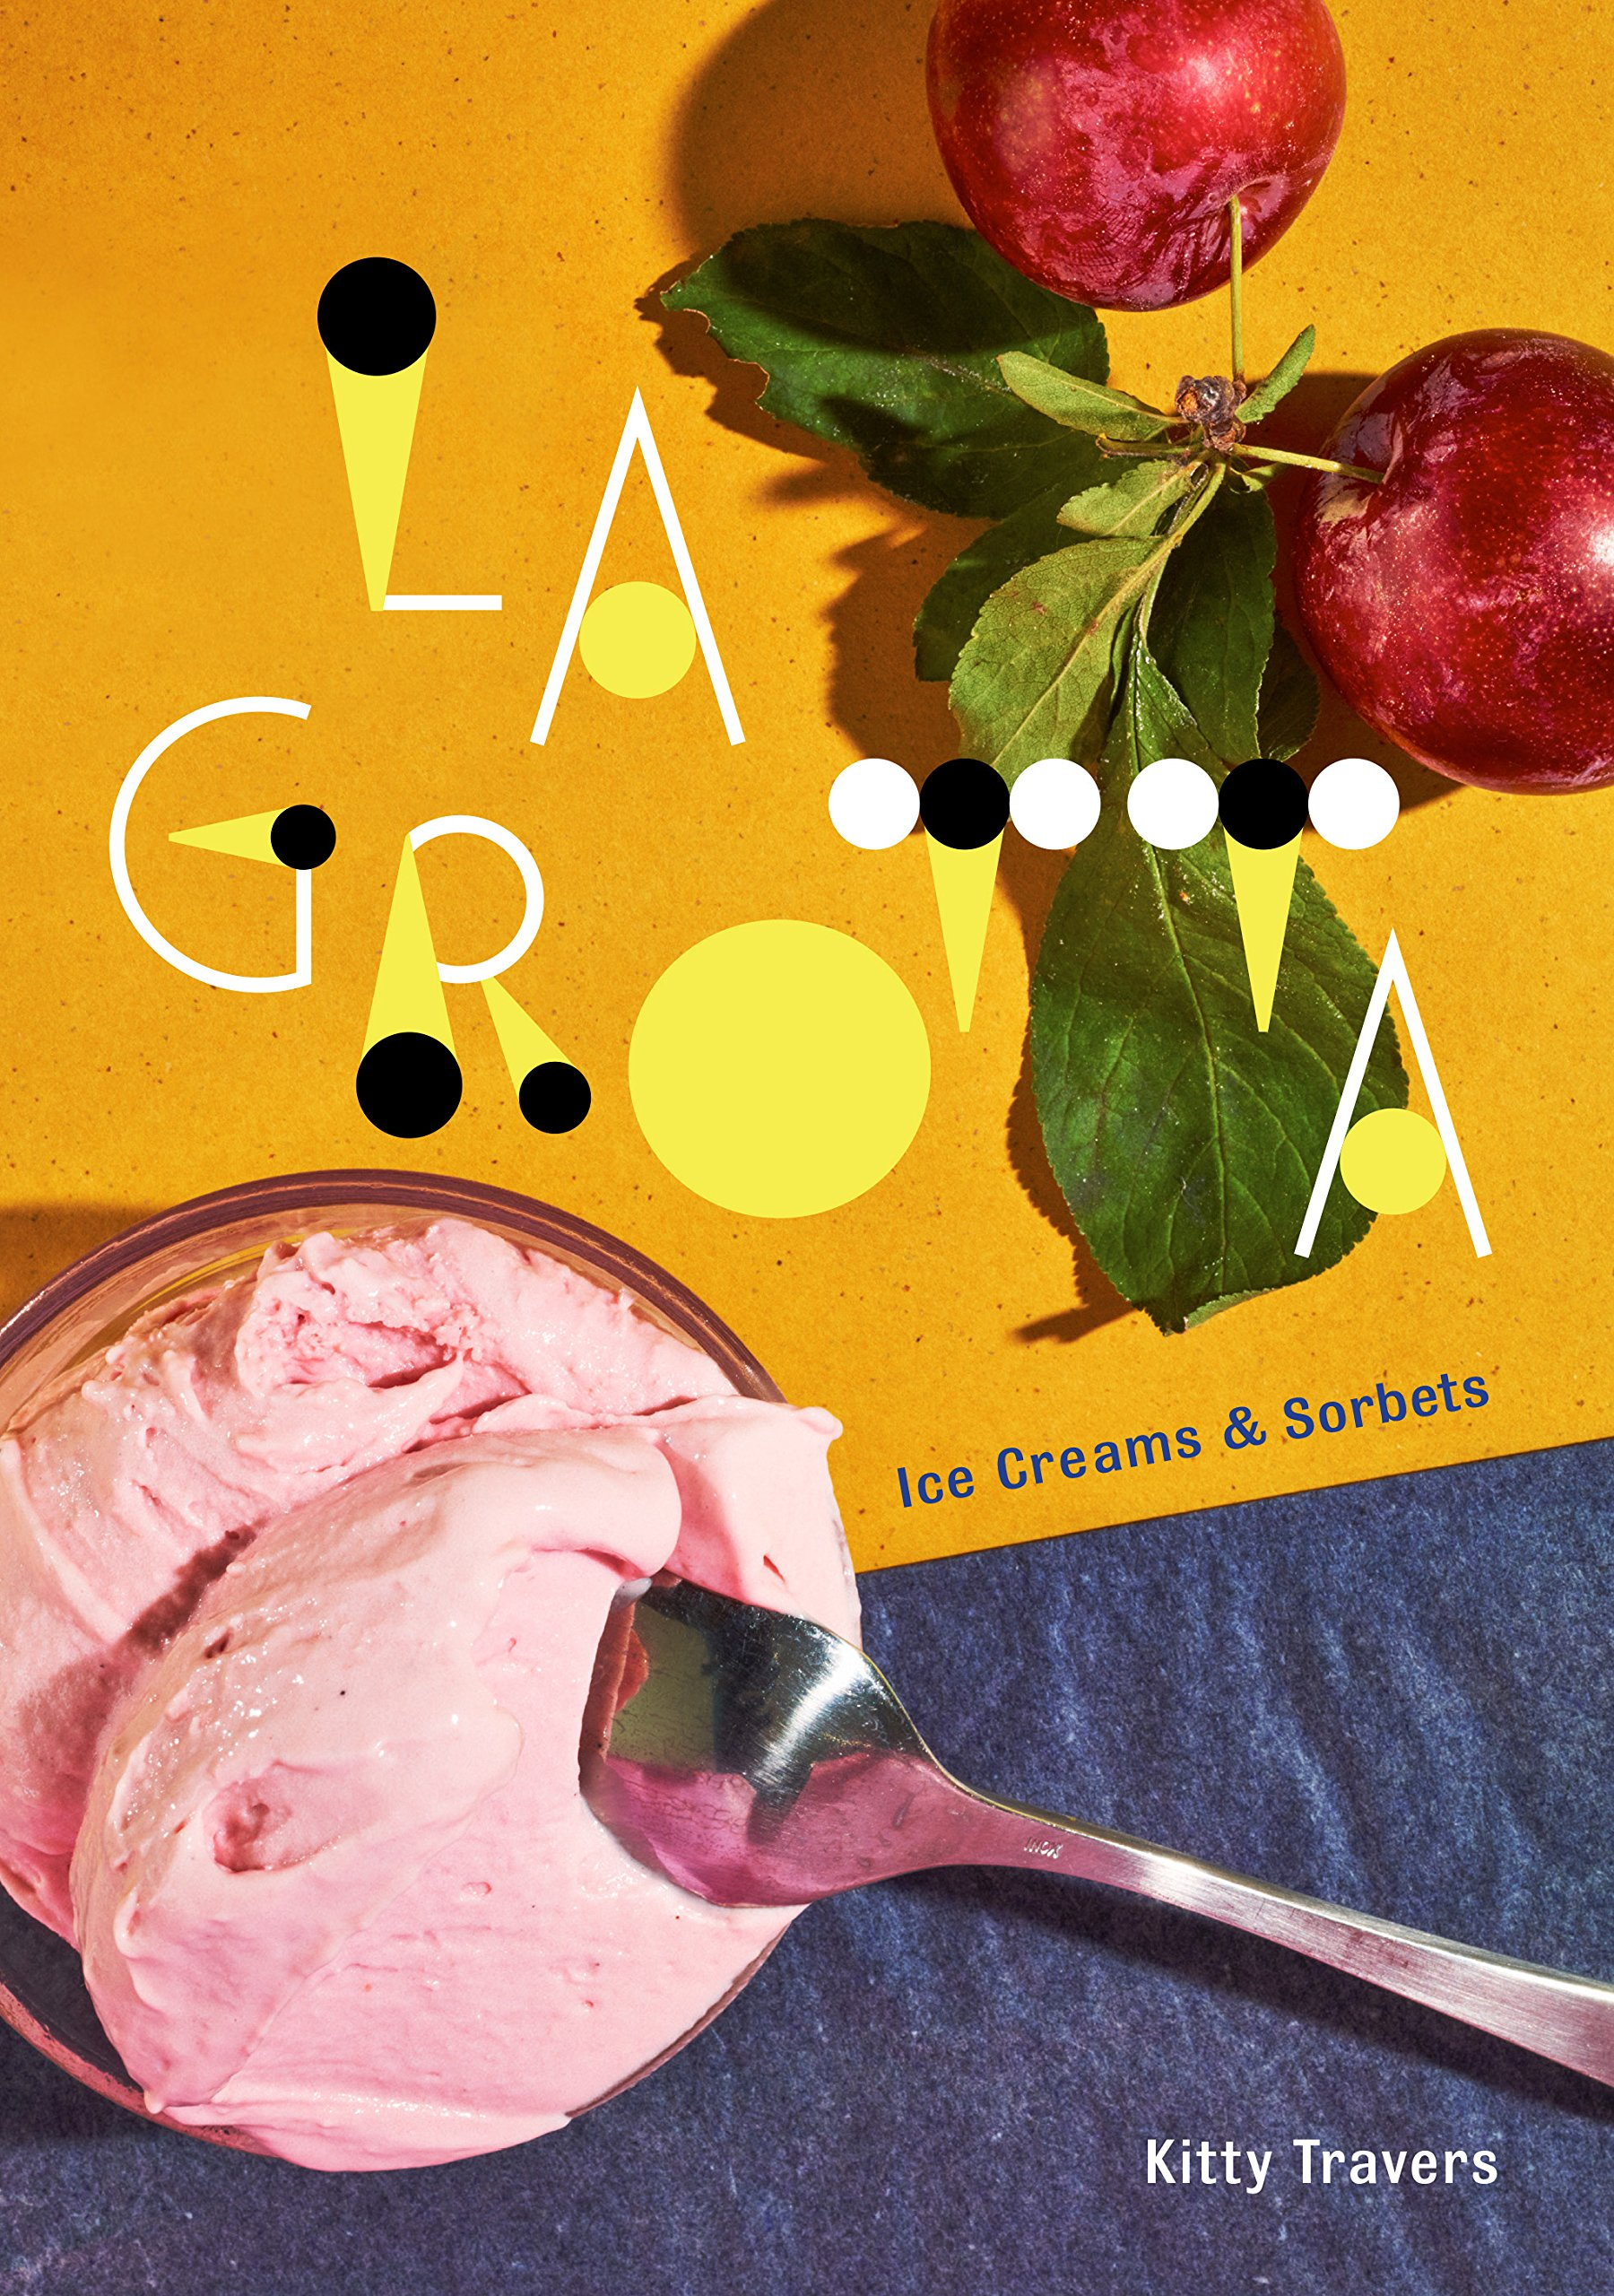 La Grotta: Ice Creams and Sorbets